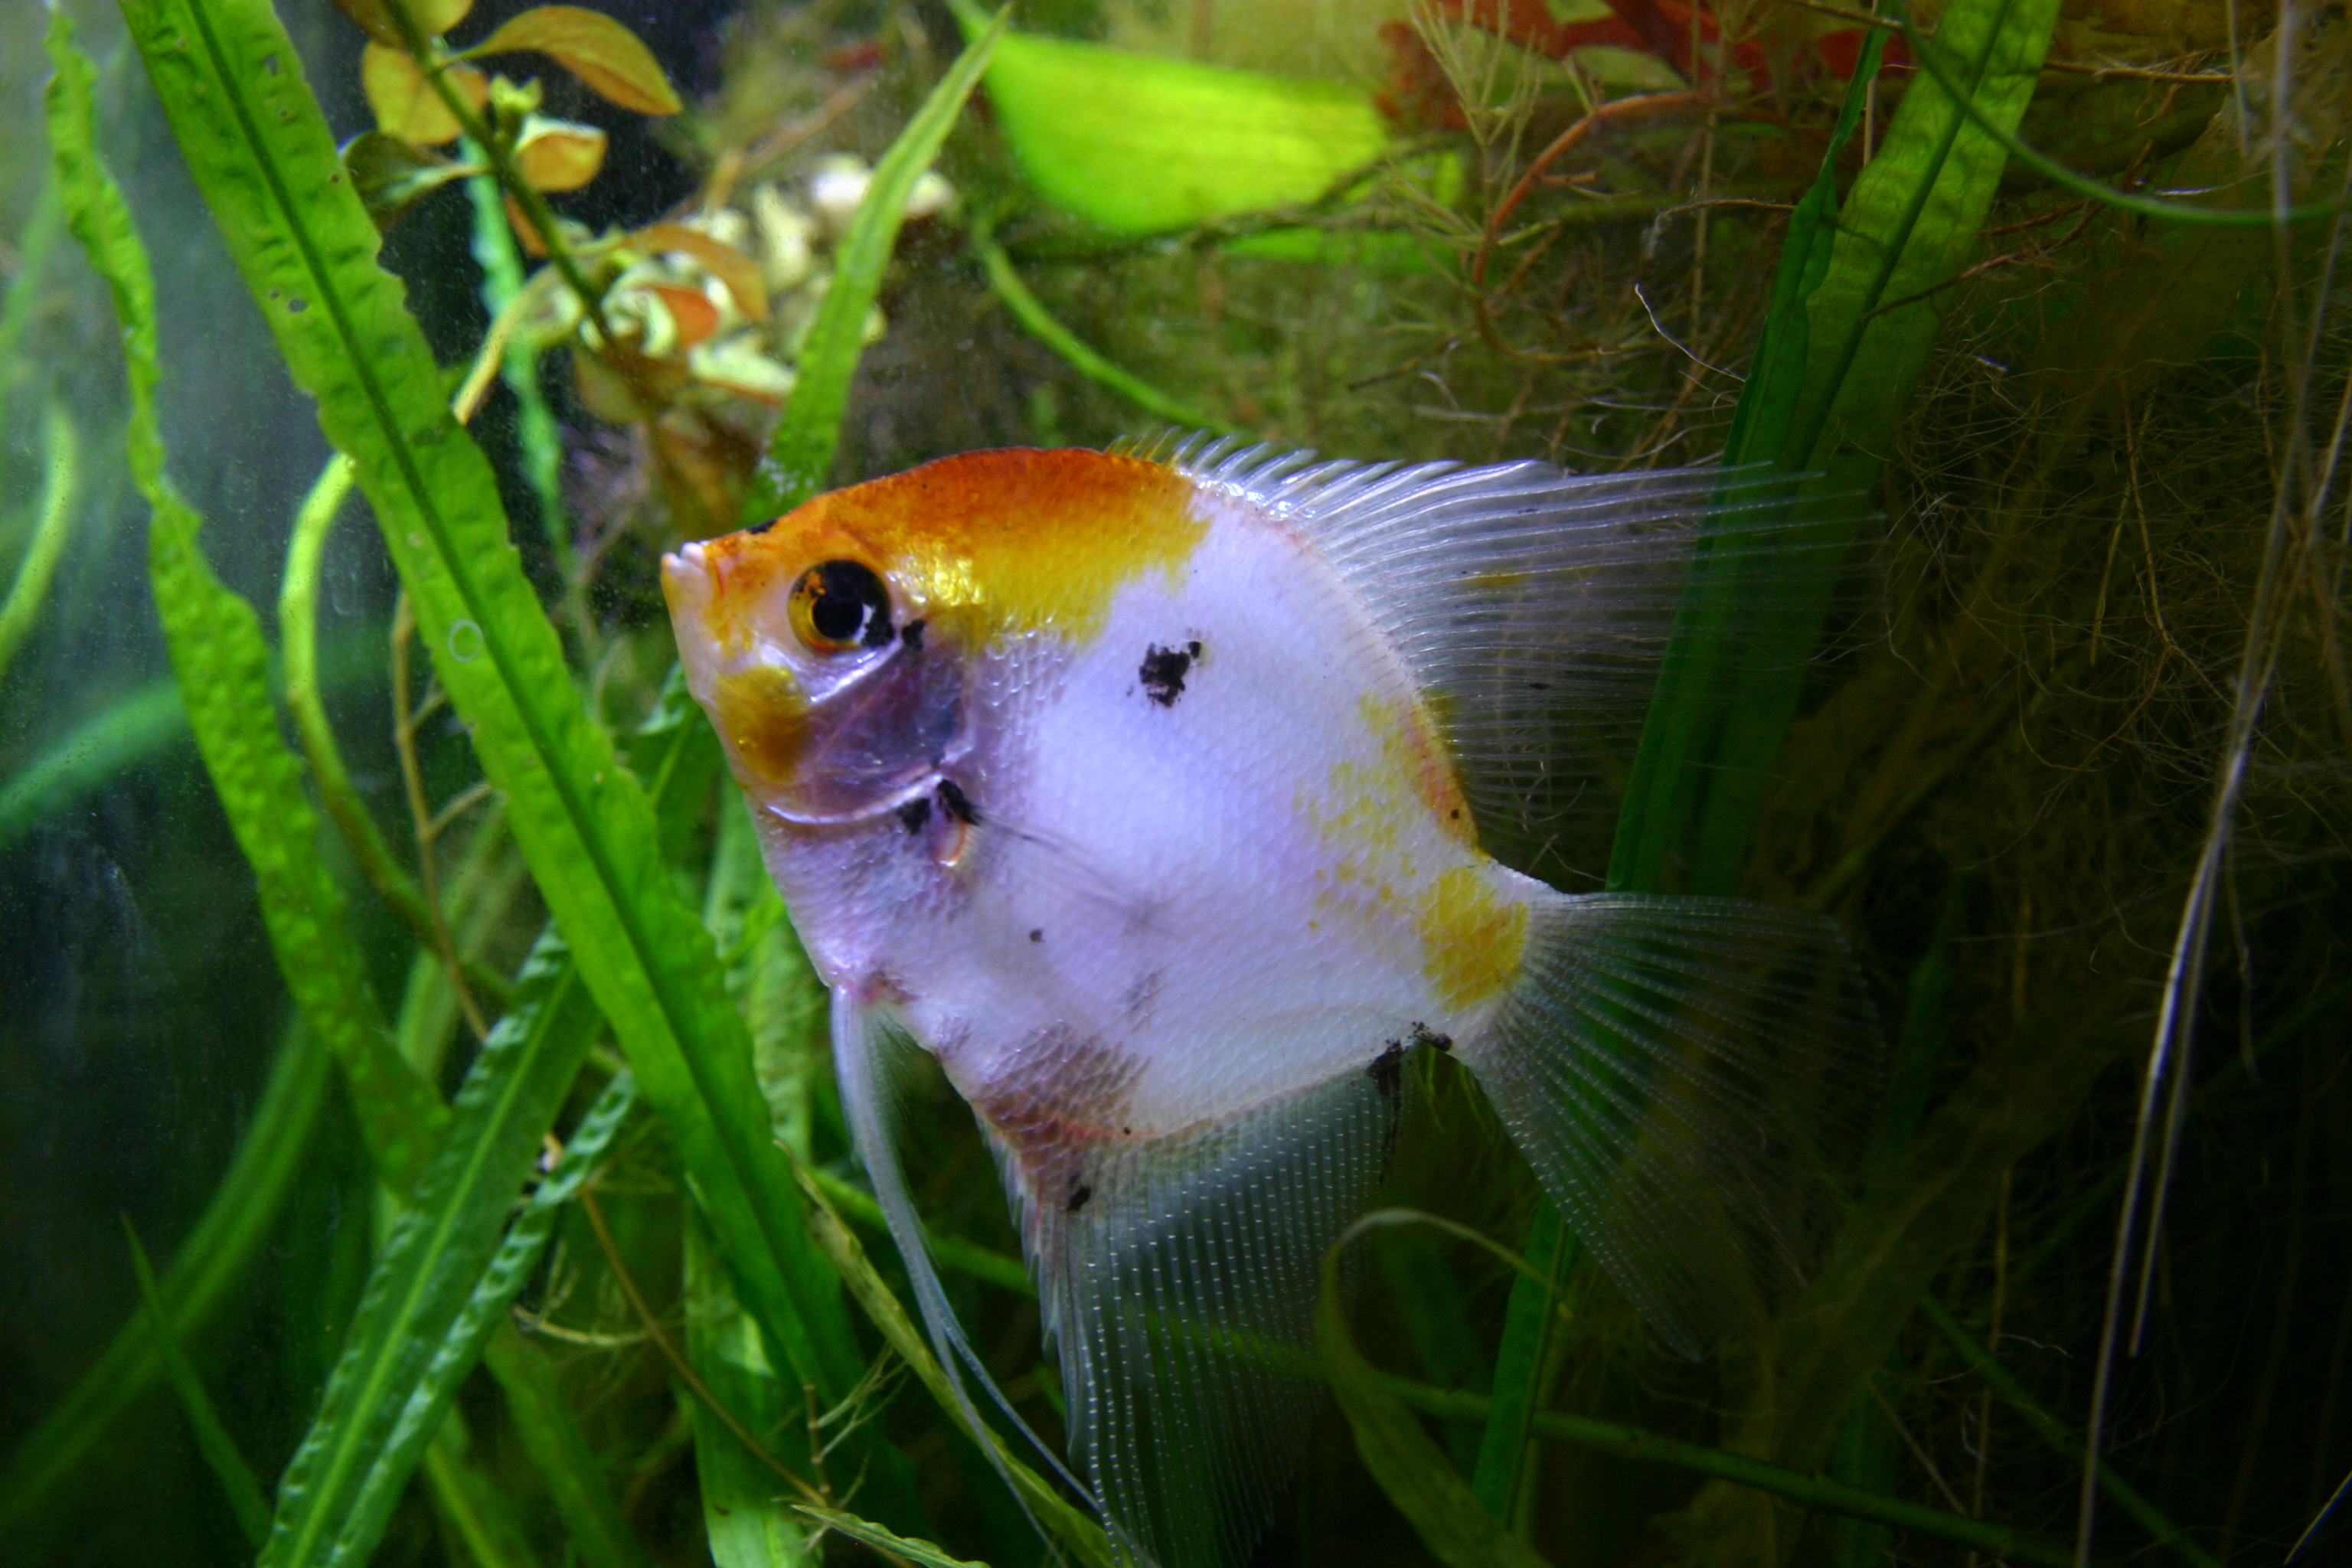 File:Freshwater angelfish.jpg - Wikipedia